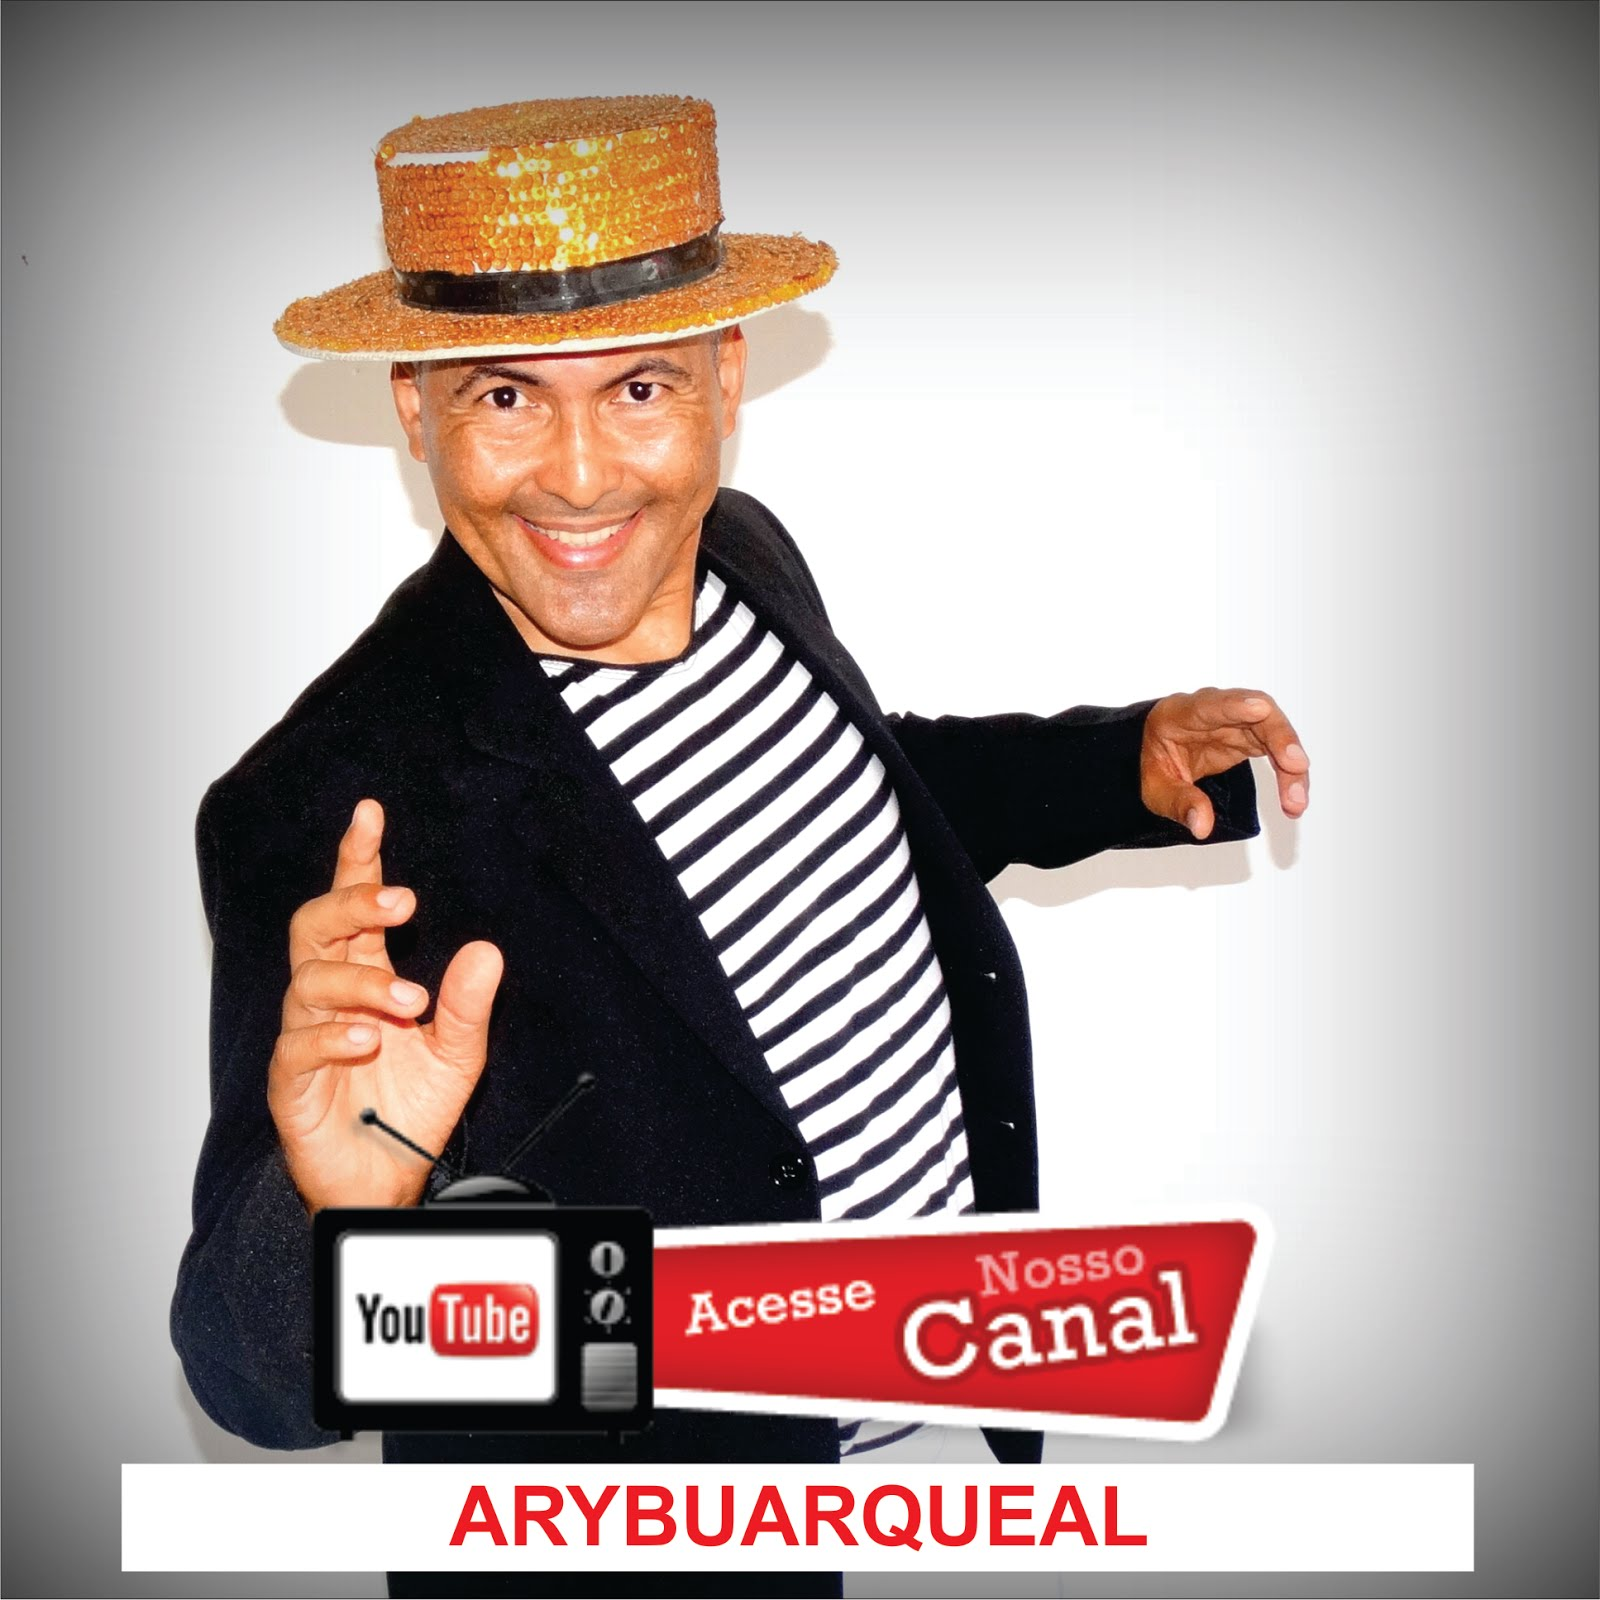 Acesse o canal ARYBUARQUEAL